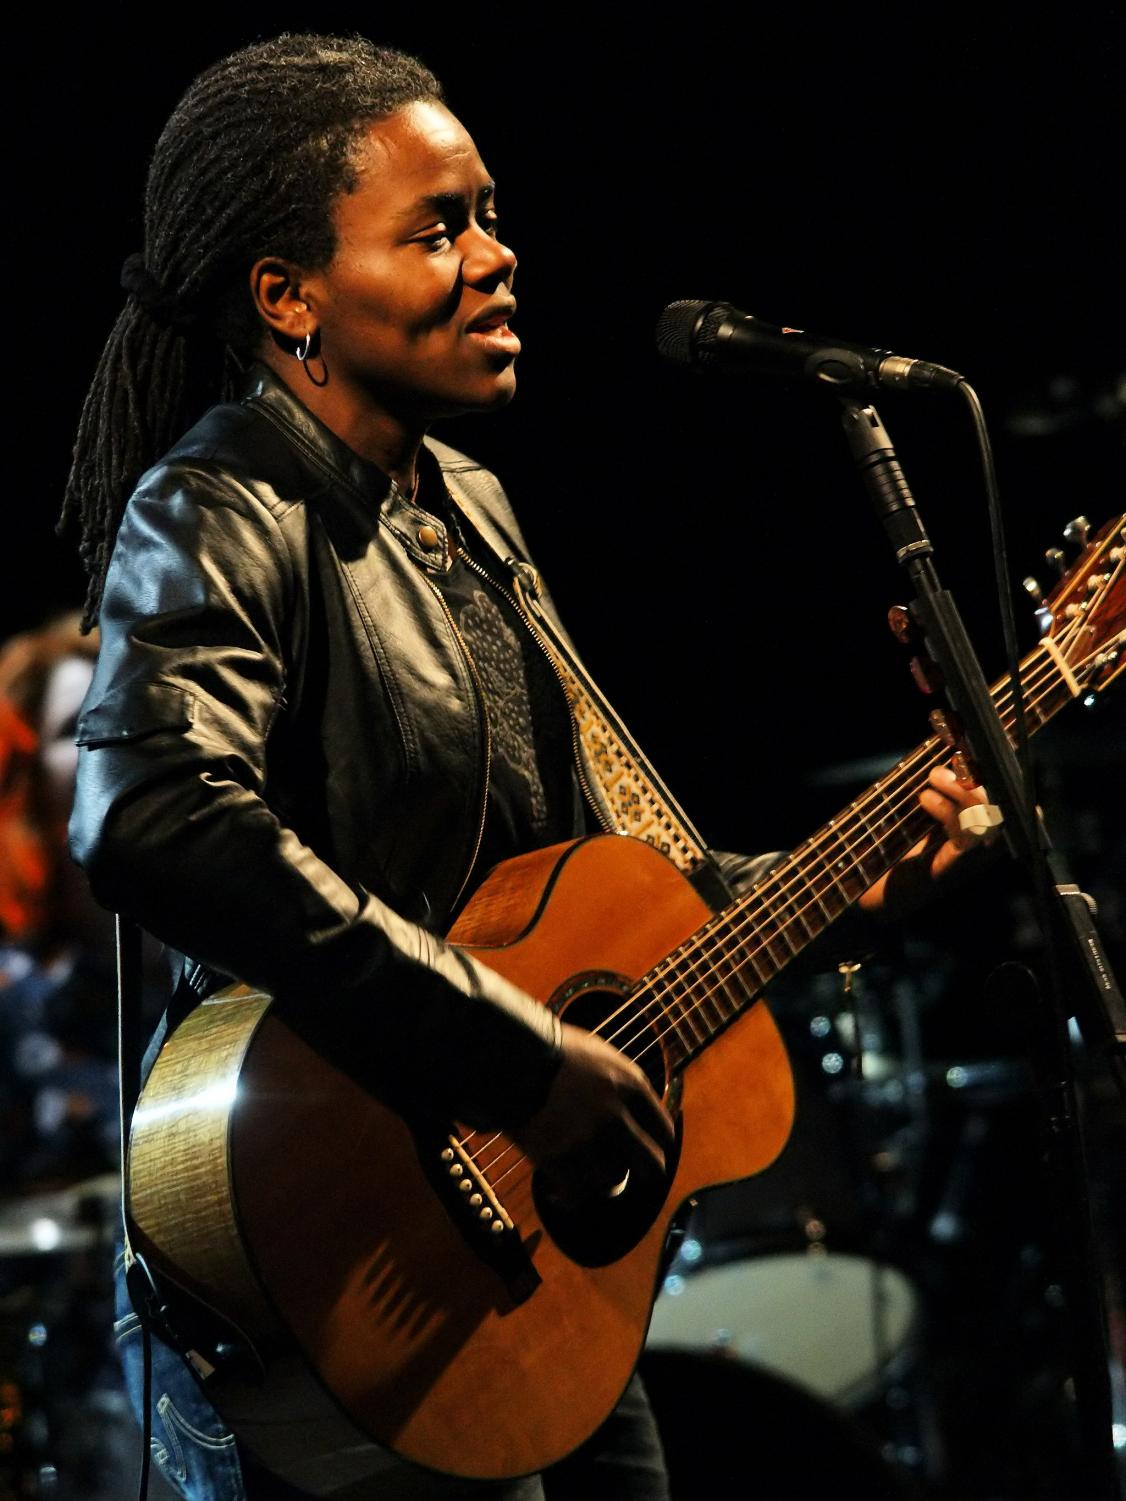 Tracy Chapman at the 2009 Cactus Festival in Bruges, Belgium.